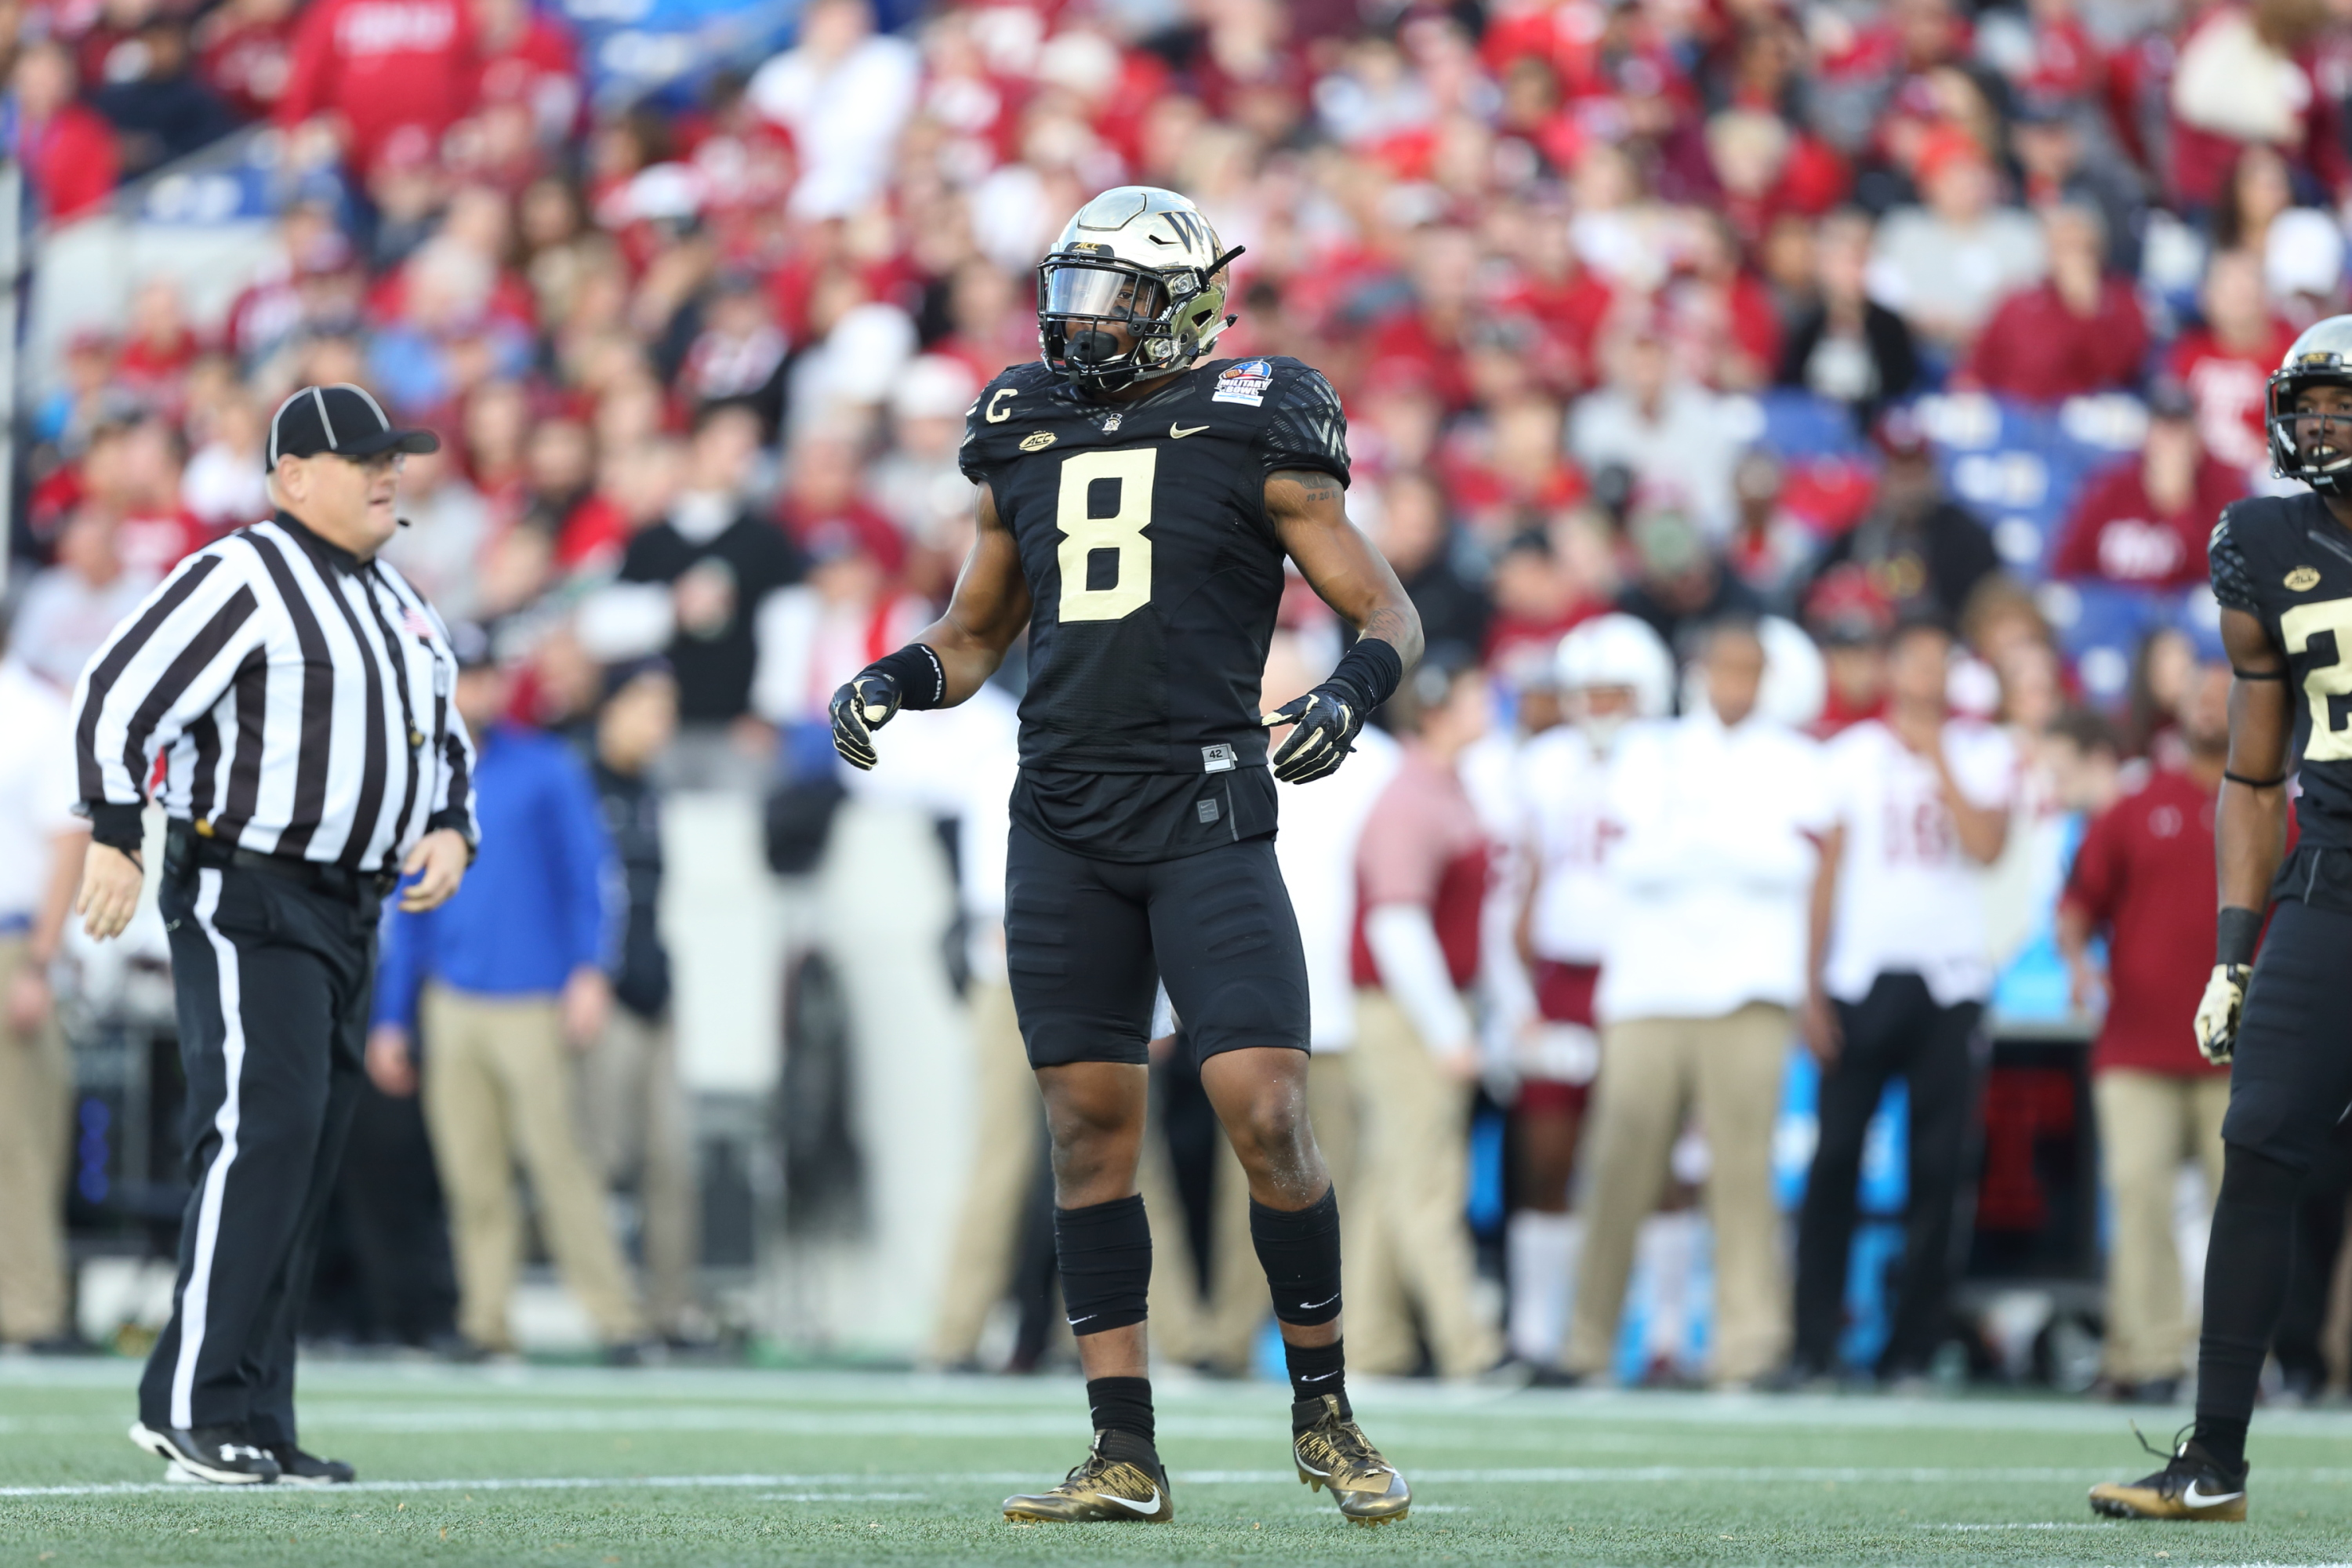 timeless design c806e d9cff Marquel Lee Headed to NFL Combine - Wake Forest University